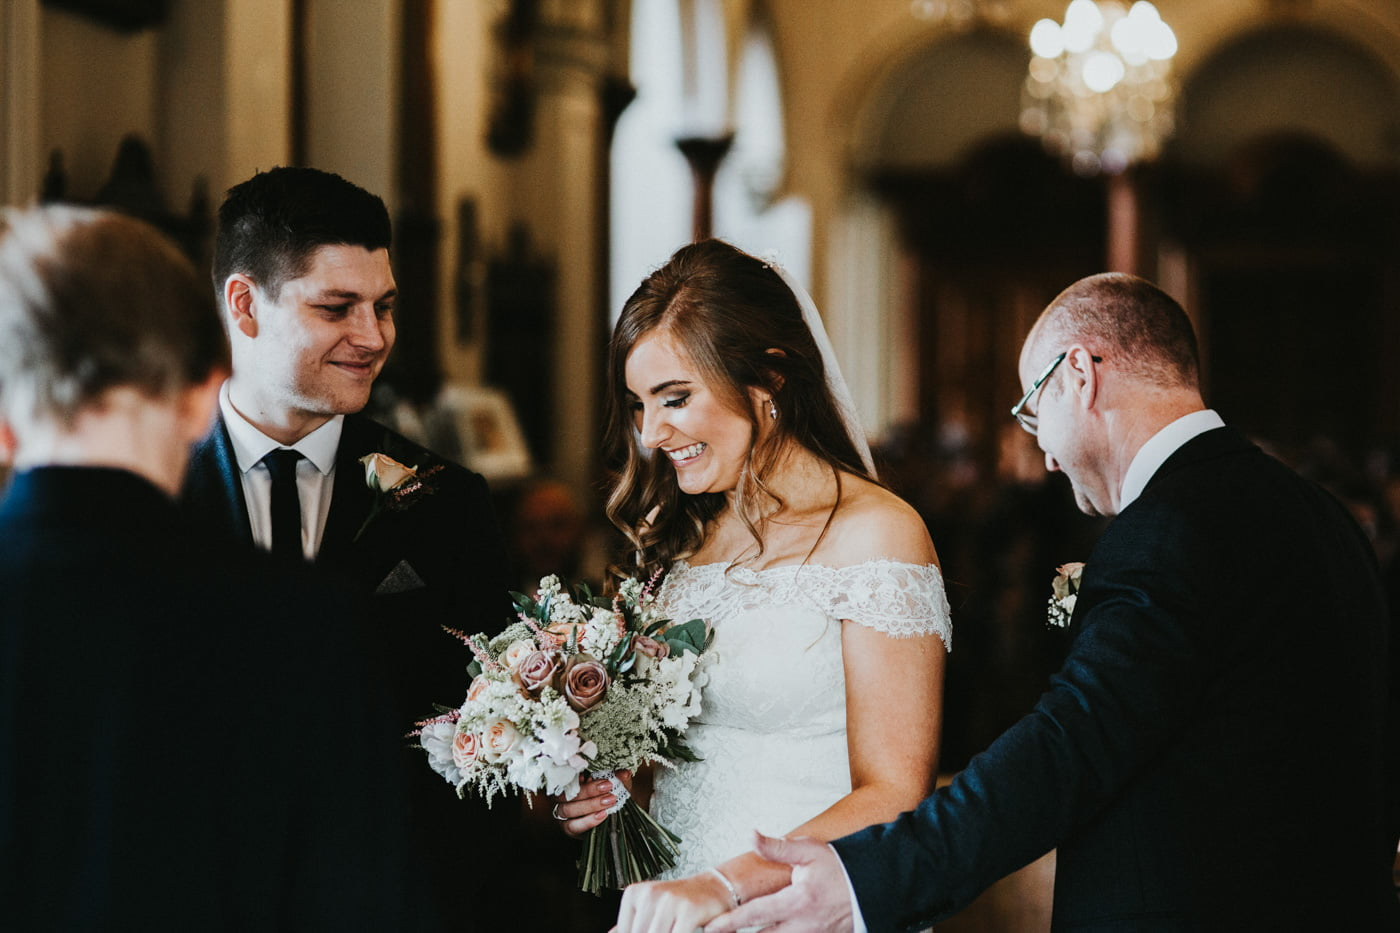 Chloe and Lewis, Orchardleigh House, Somerset 18